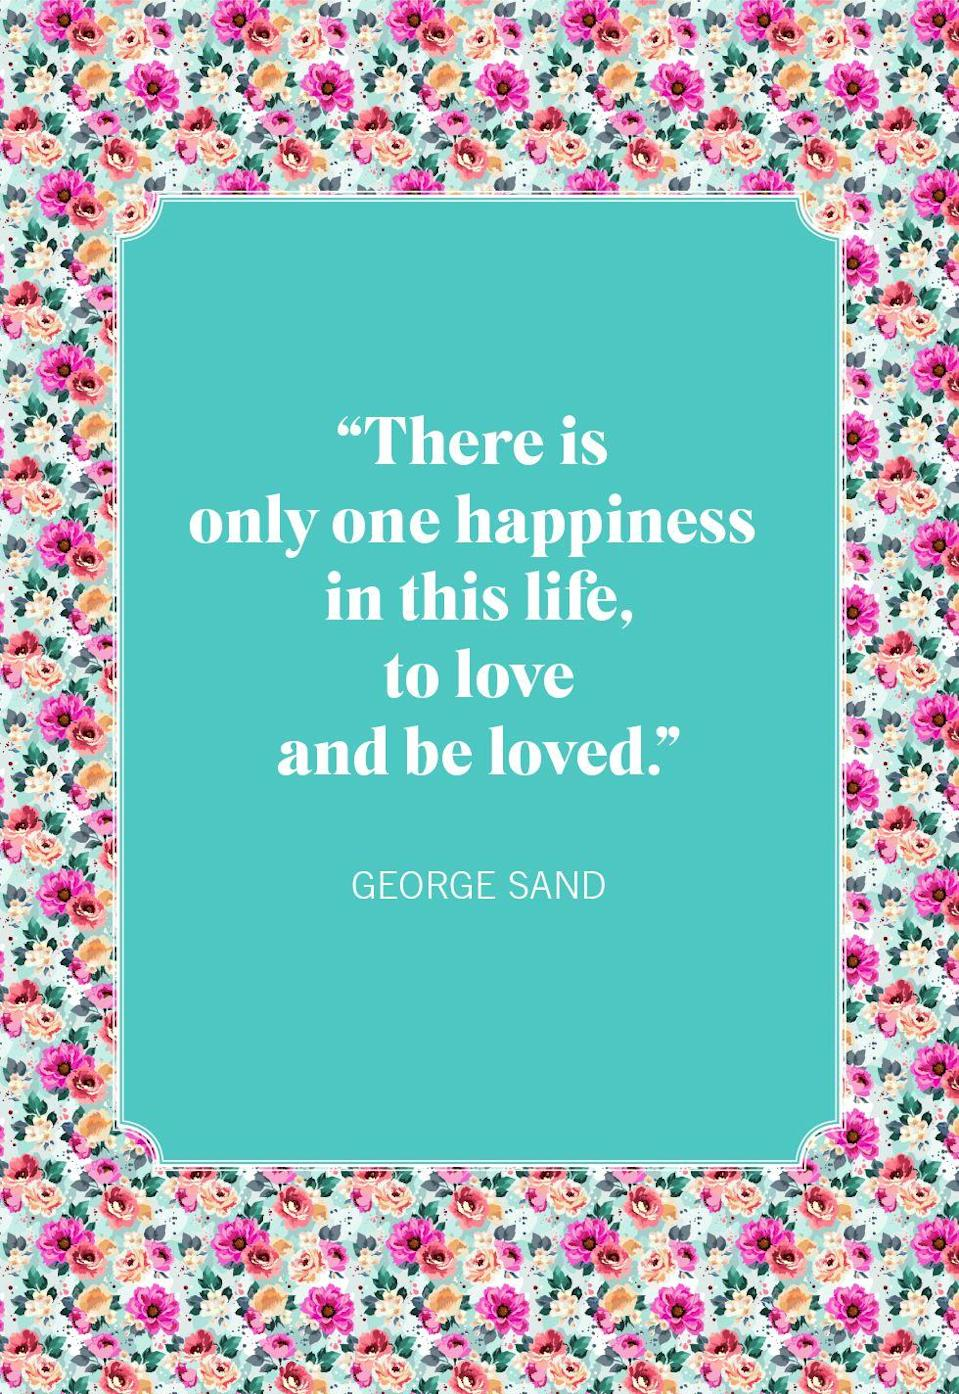 "<p>""There is only one happiness in this life, to love and be loved.""</p>"